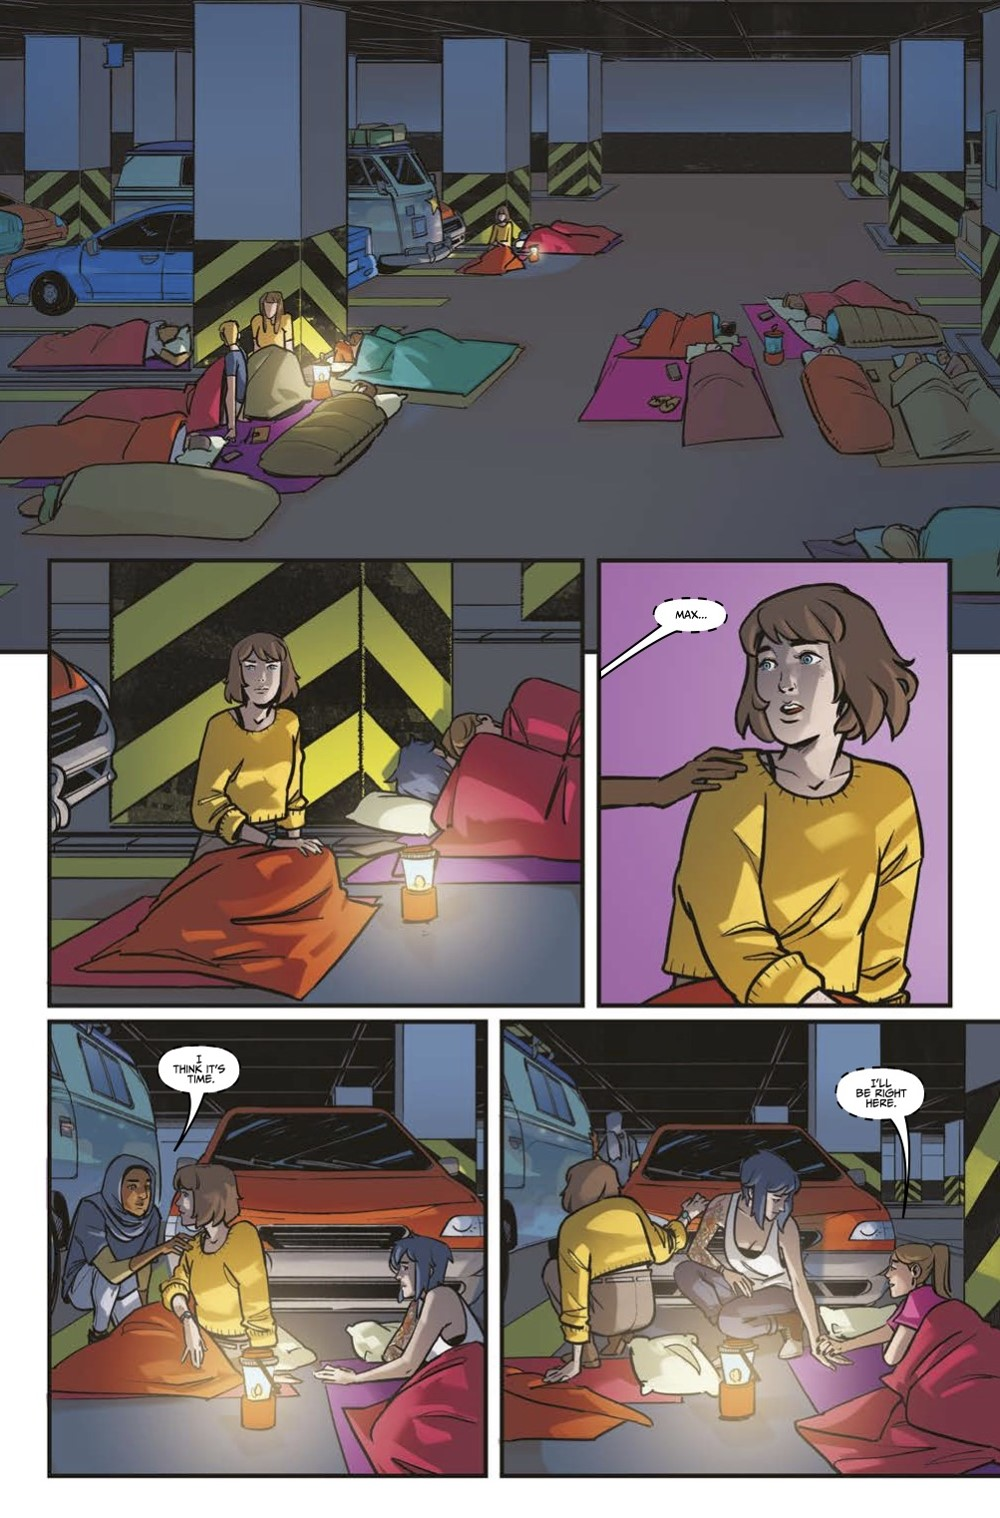 LIS-Settling-Dust-Page-4 ComicList Previews: LIFE IS STRANGE SETTLING DUST #1 (OF 4)